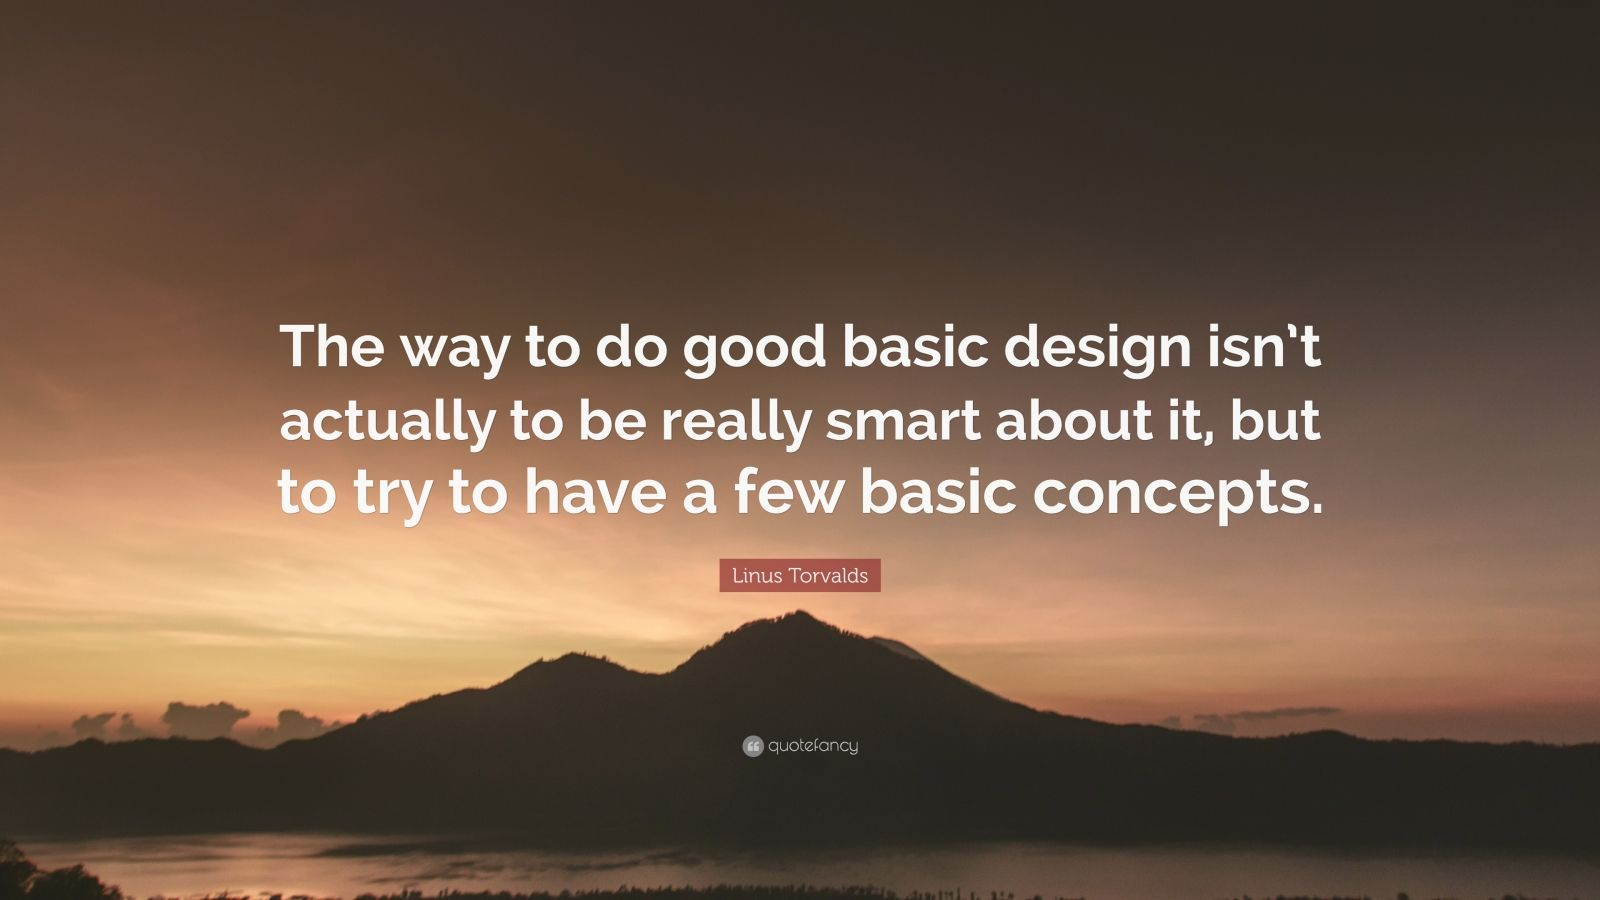 """Linus Torvalds Quote: """"The way to do good basic design isn't actually to be really smart about it, but to try to have a few basic concepts."""""""